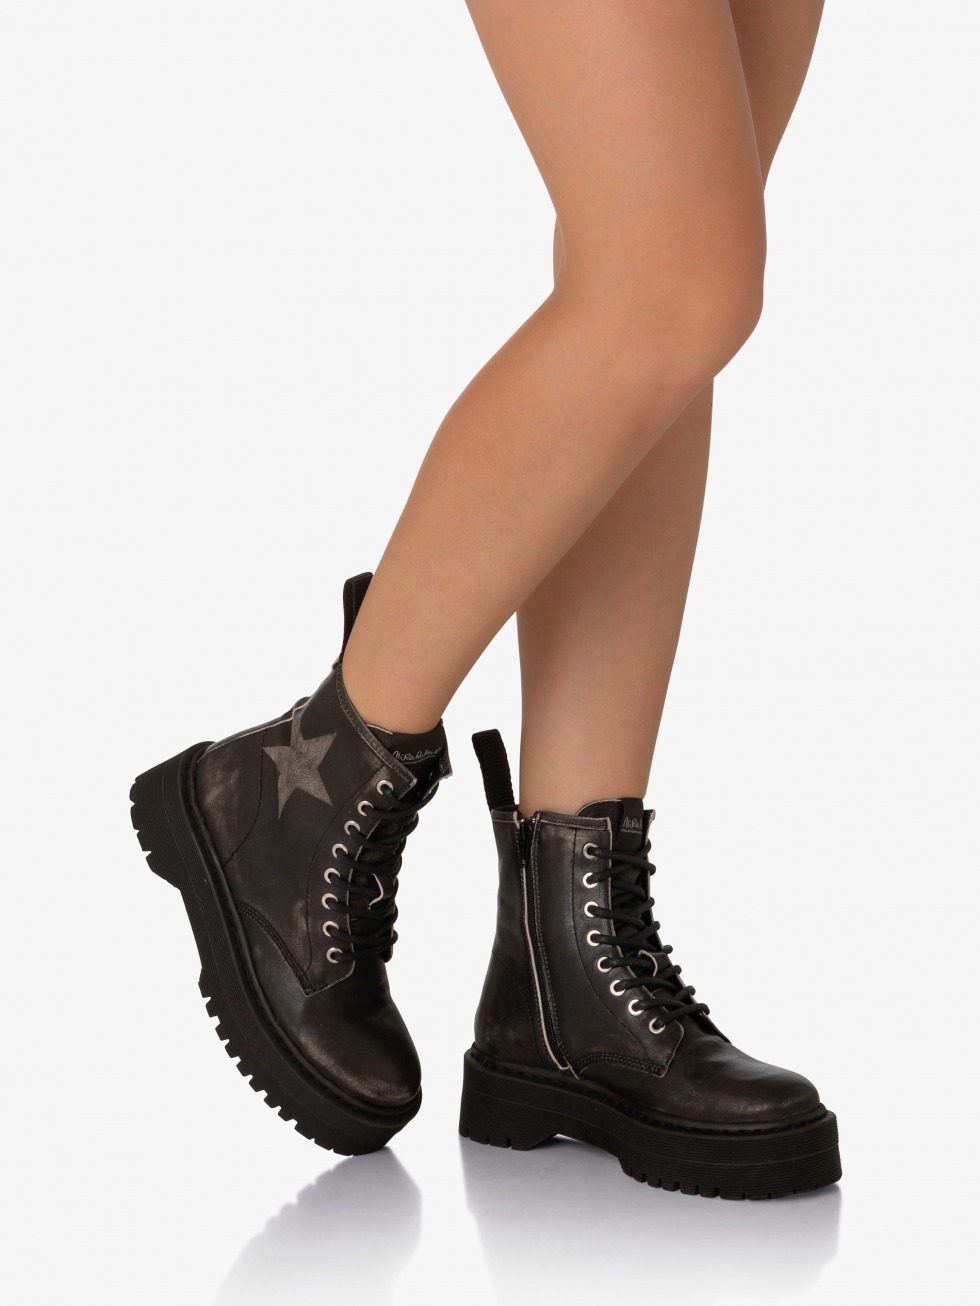 Bloody Mary Top Boots - Storm Star